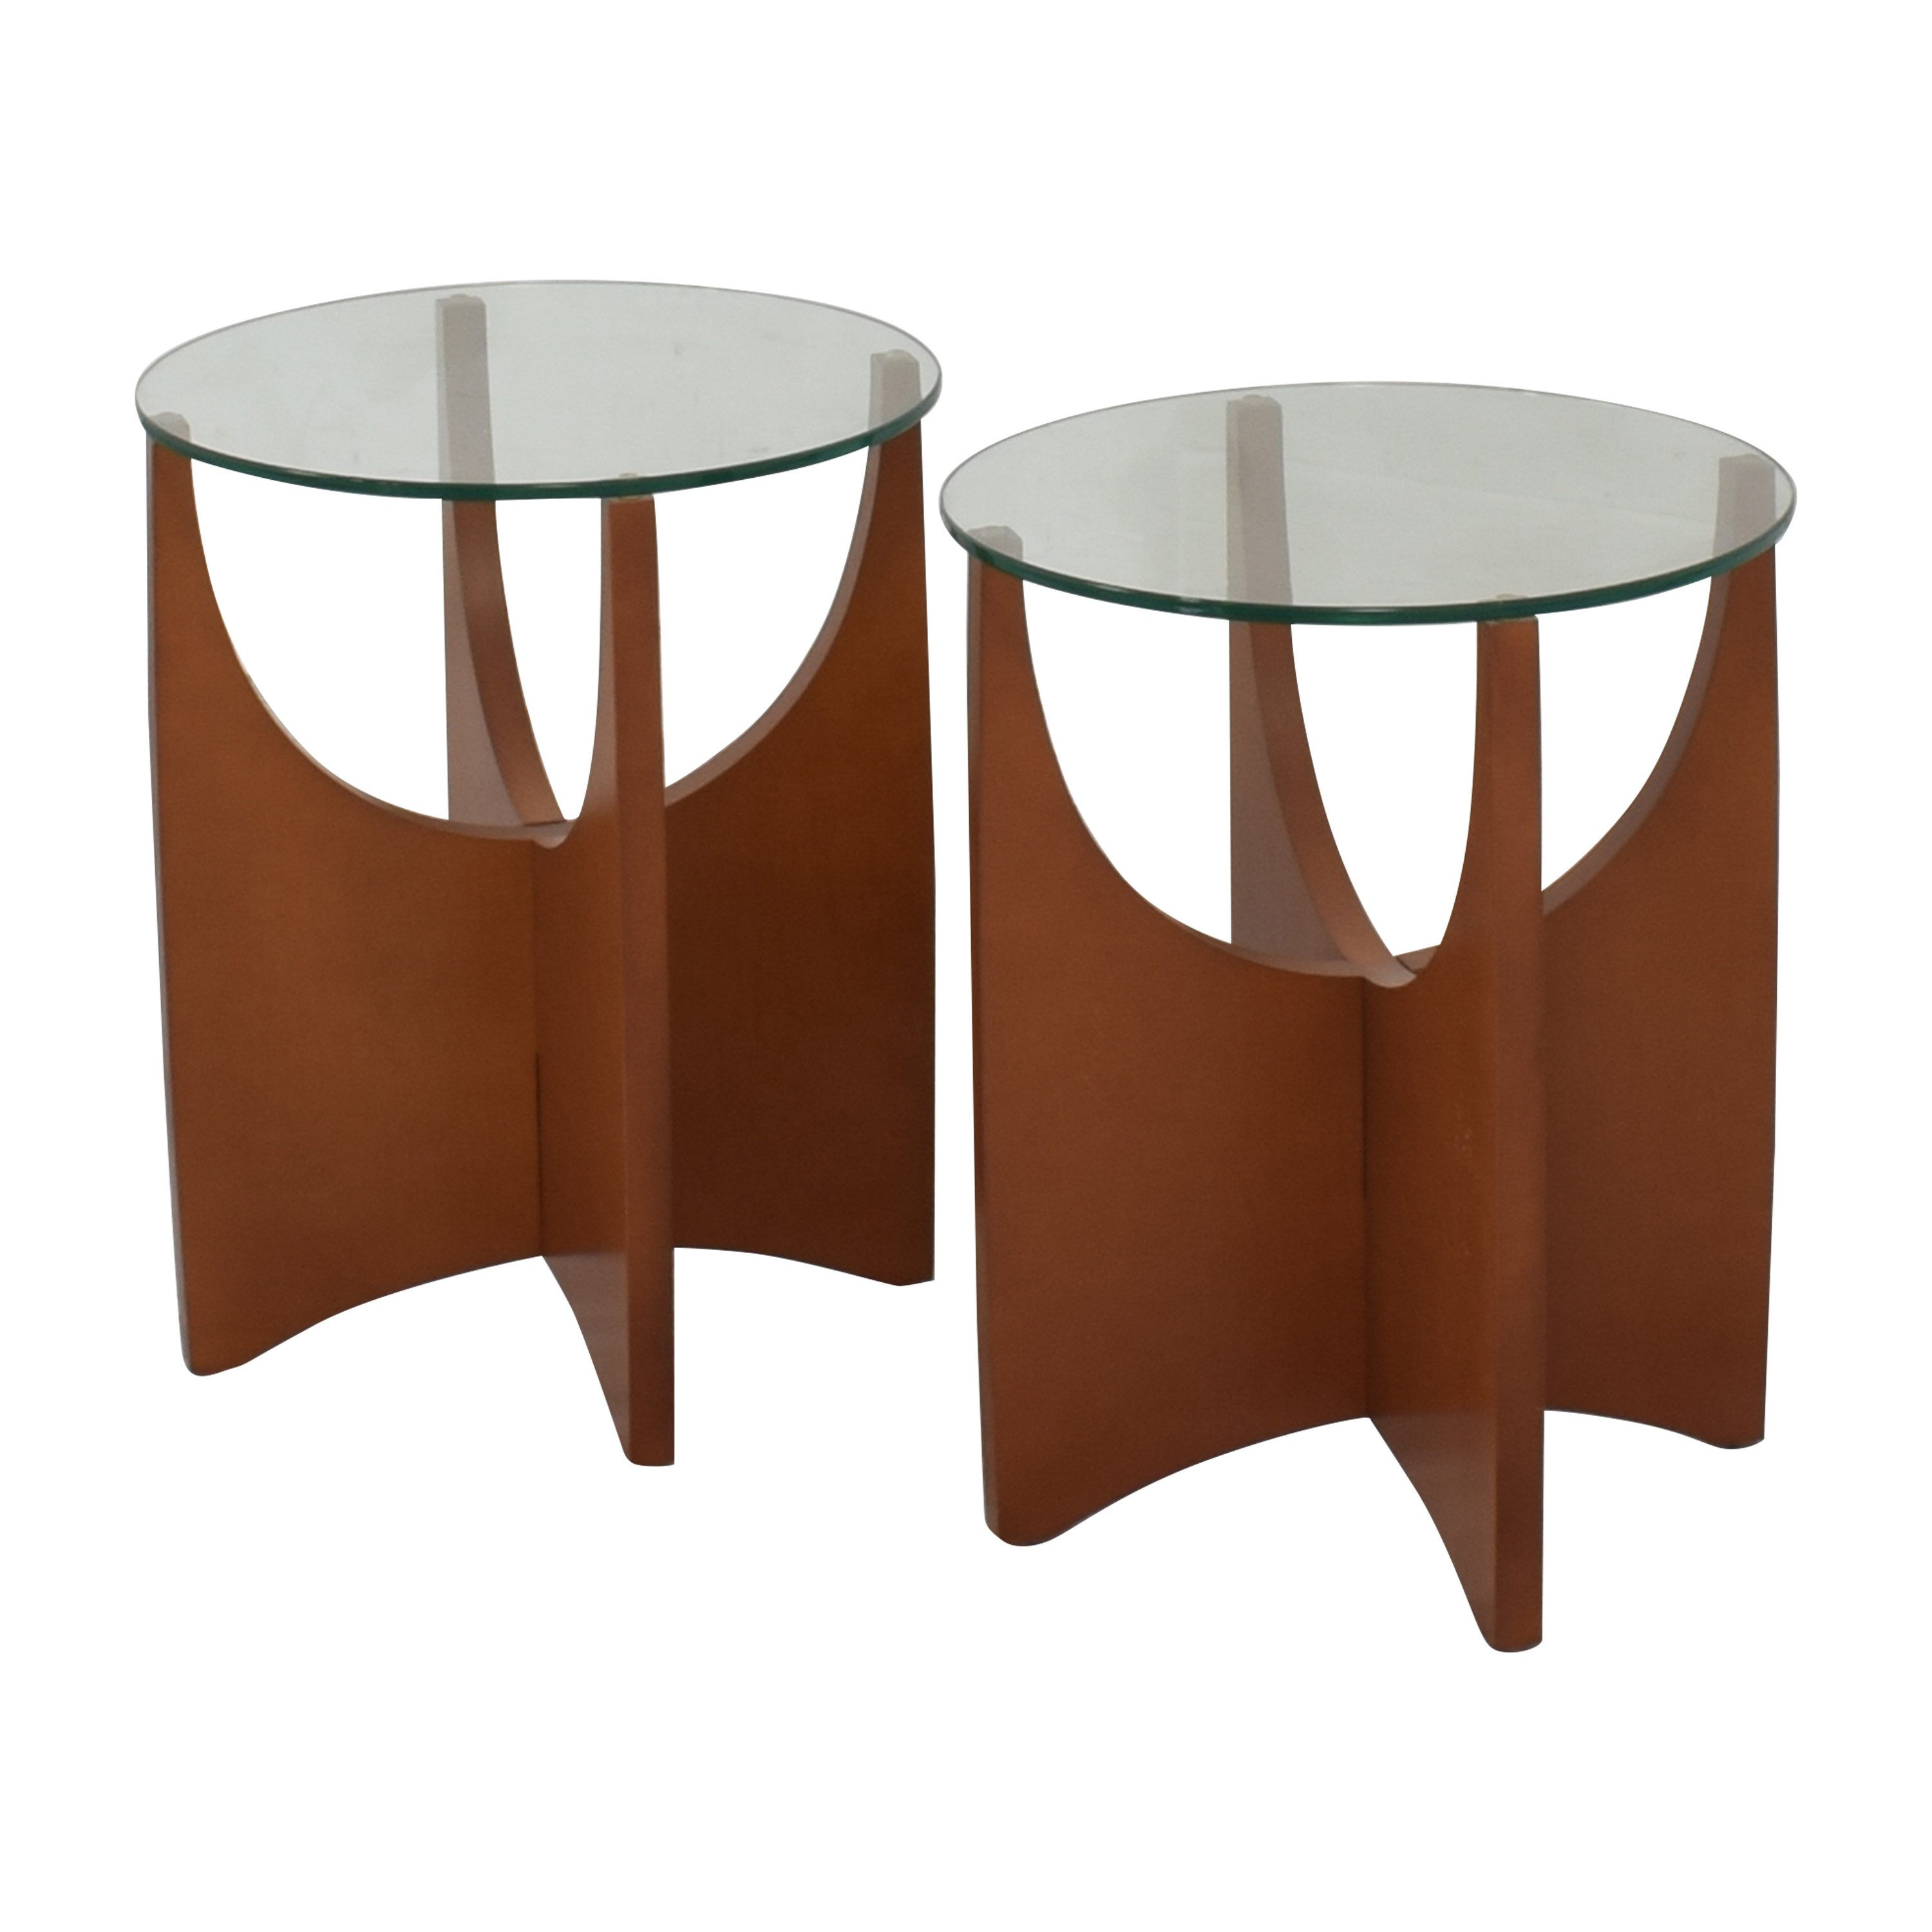 Steelcase Steelcase Turnstone Alight End Tables coupon